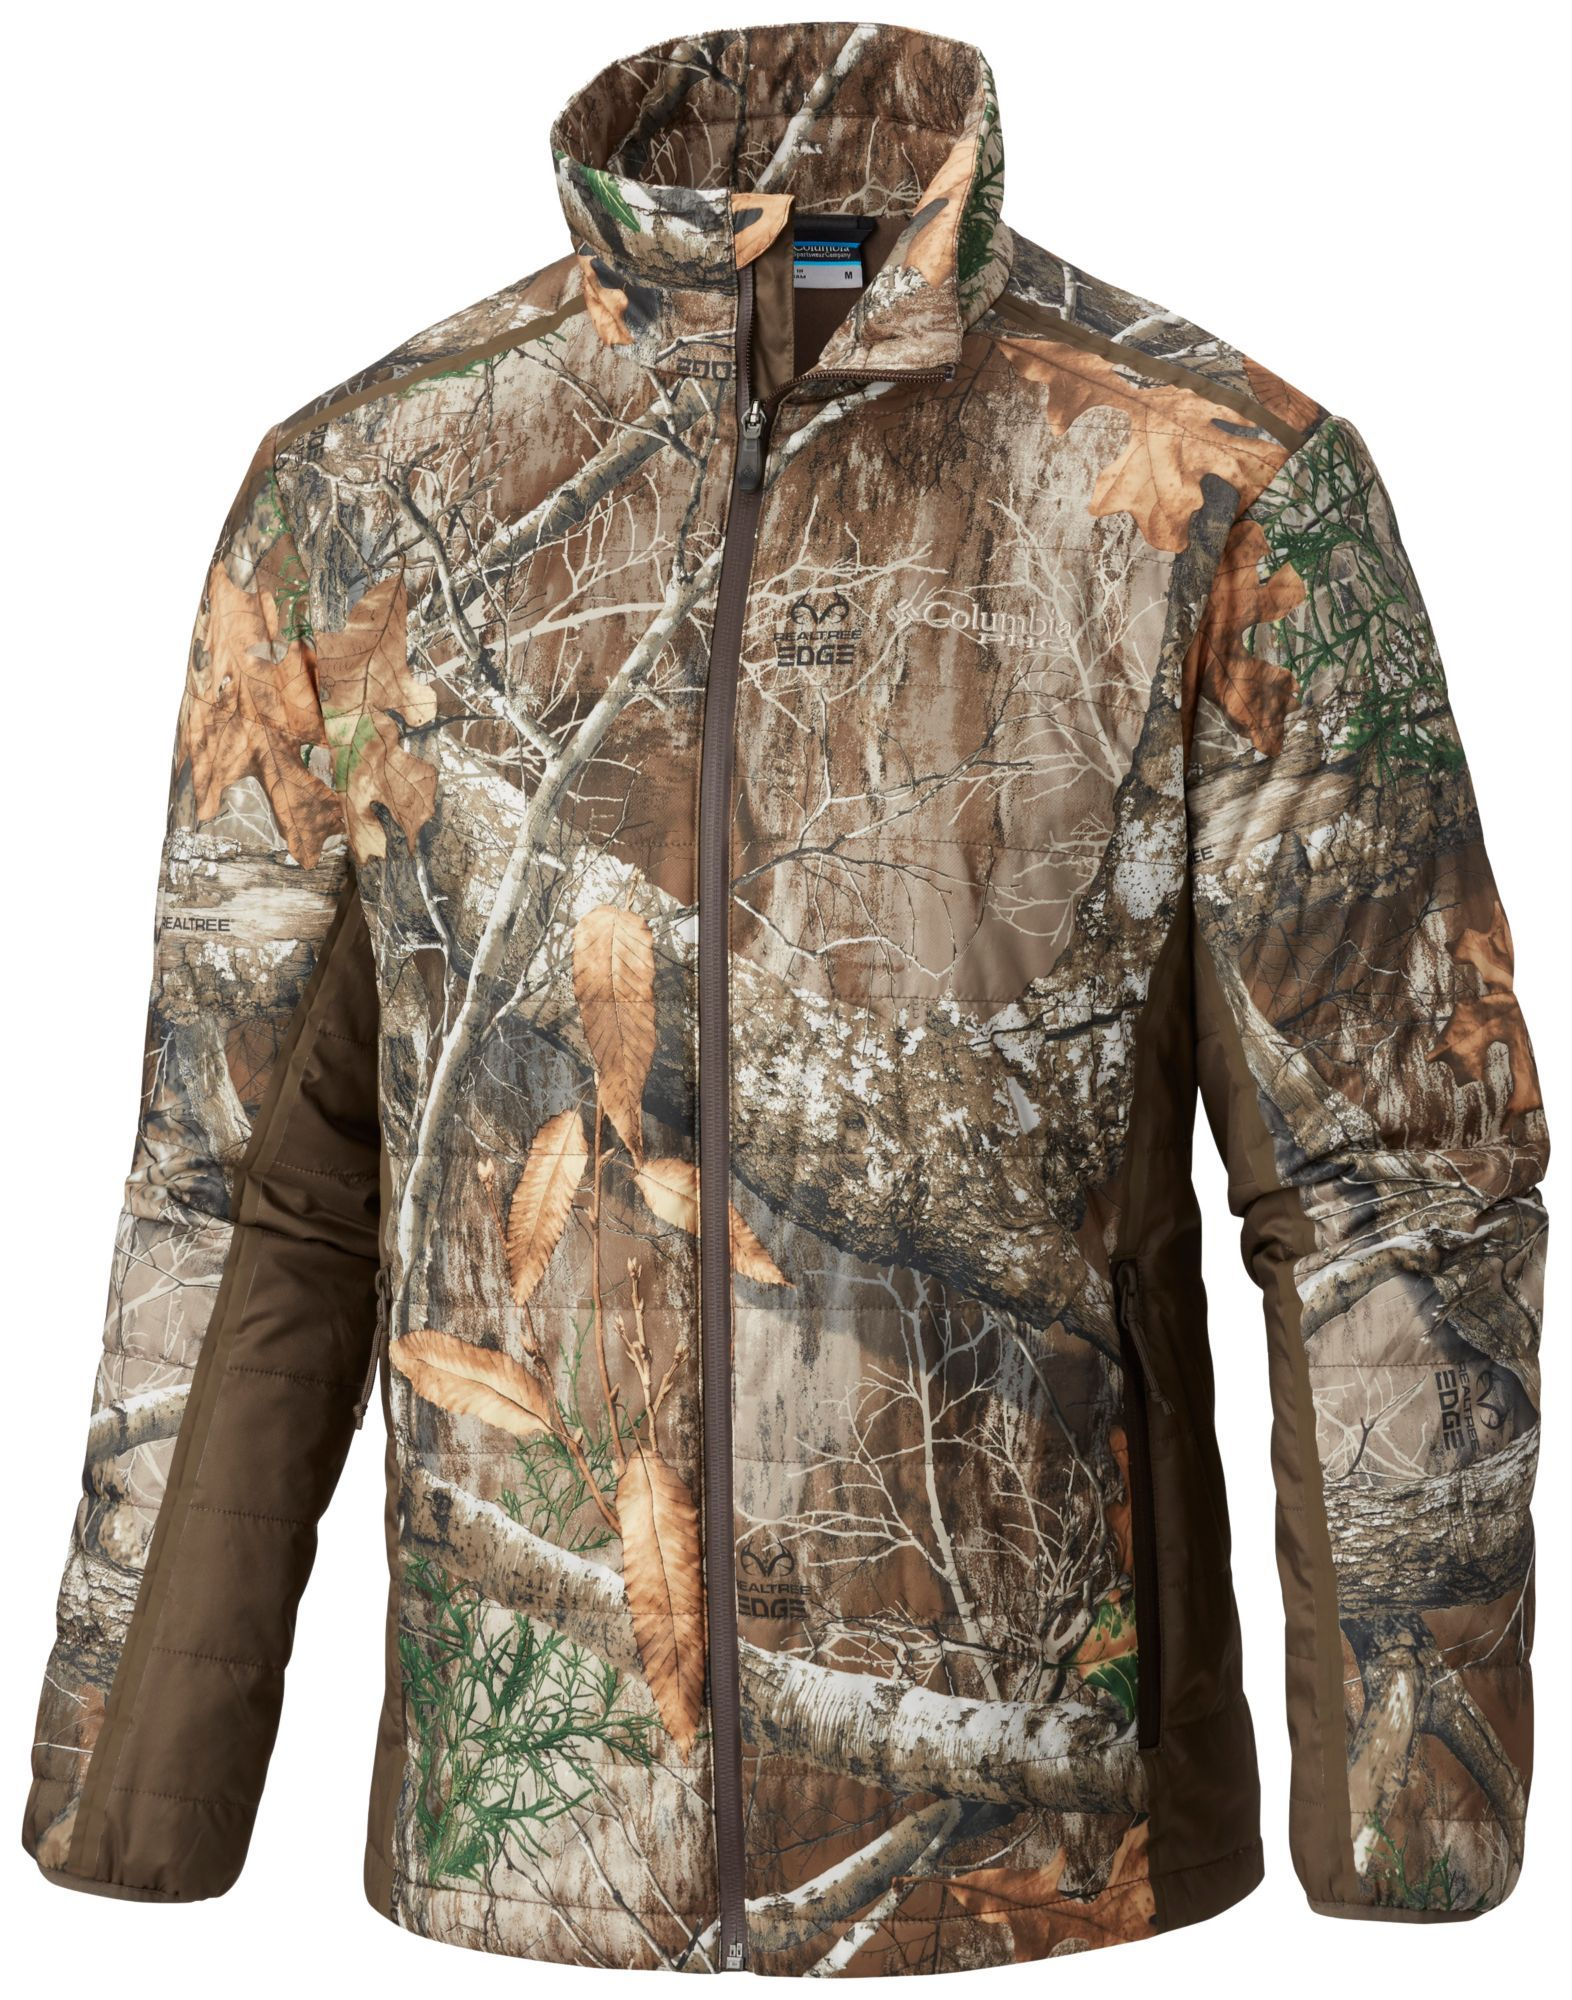 54882be9b3689 Columbia Men's Trophy Rack Insulated Hunting Jacket | Products ...